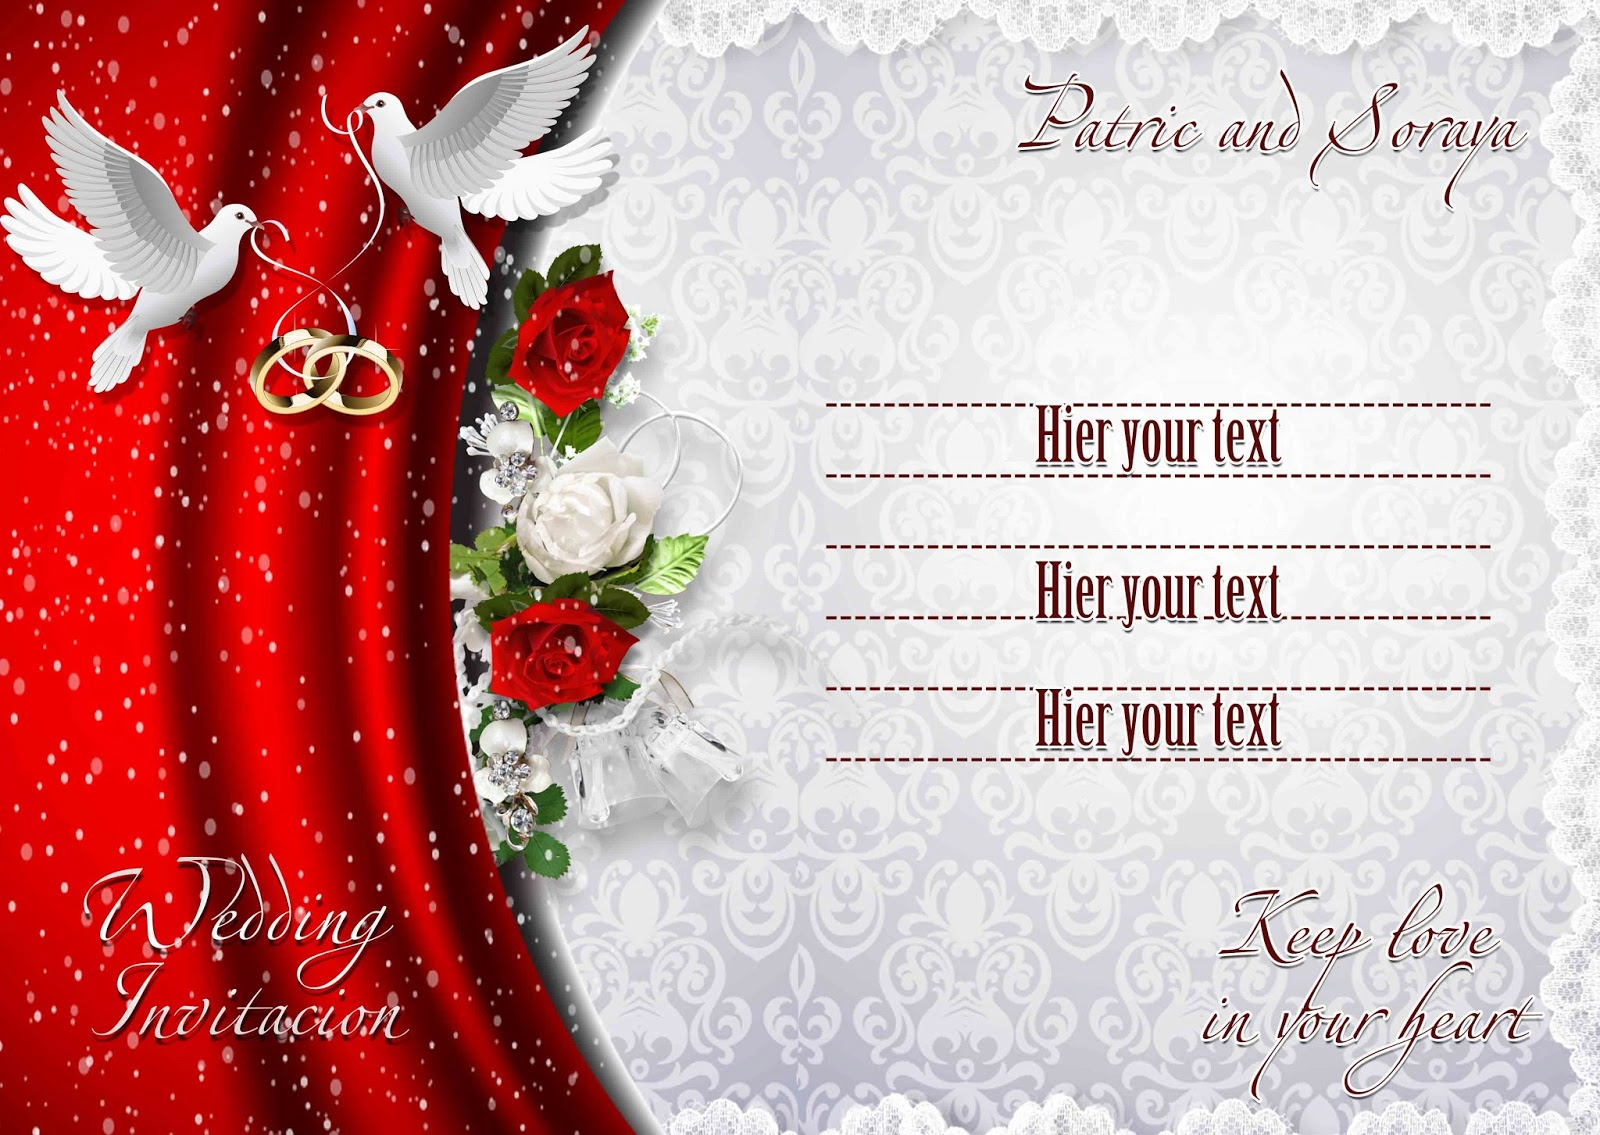 wedding invitation psd free - 28 images - 21 psd wedding invitation ...